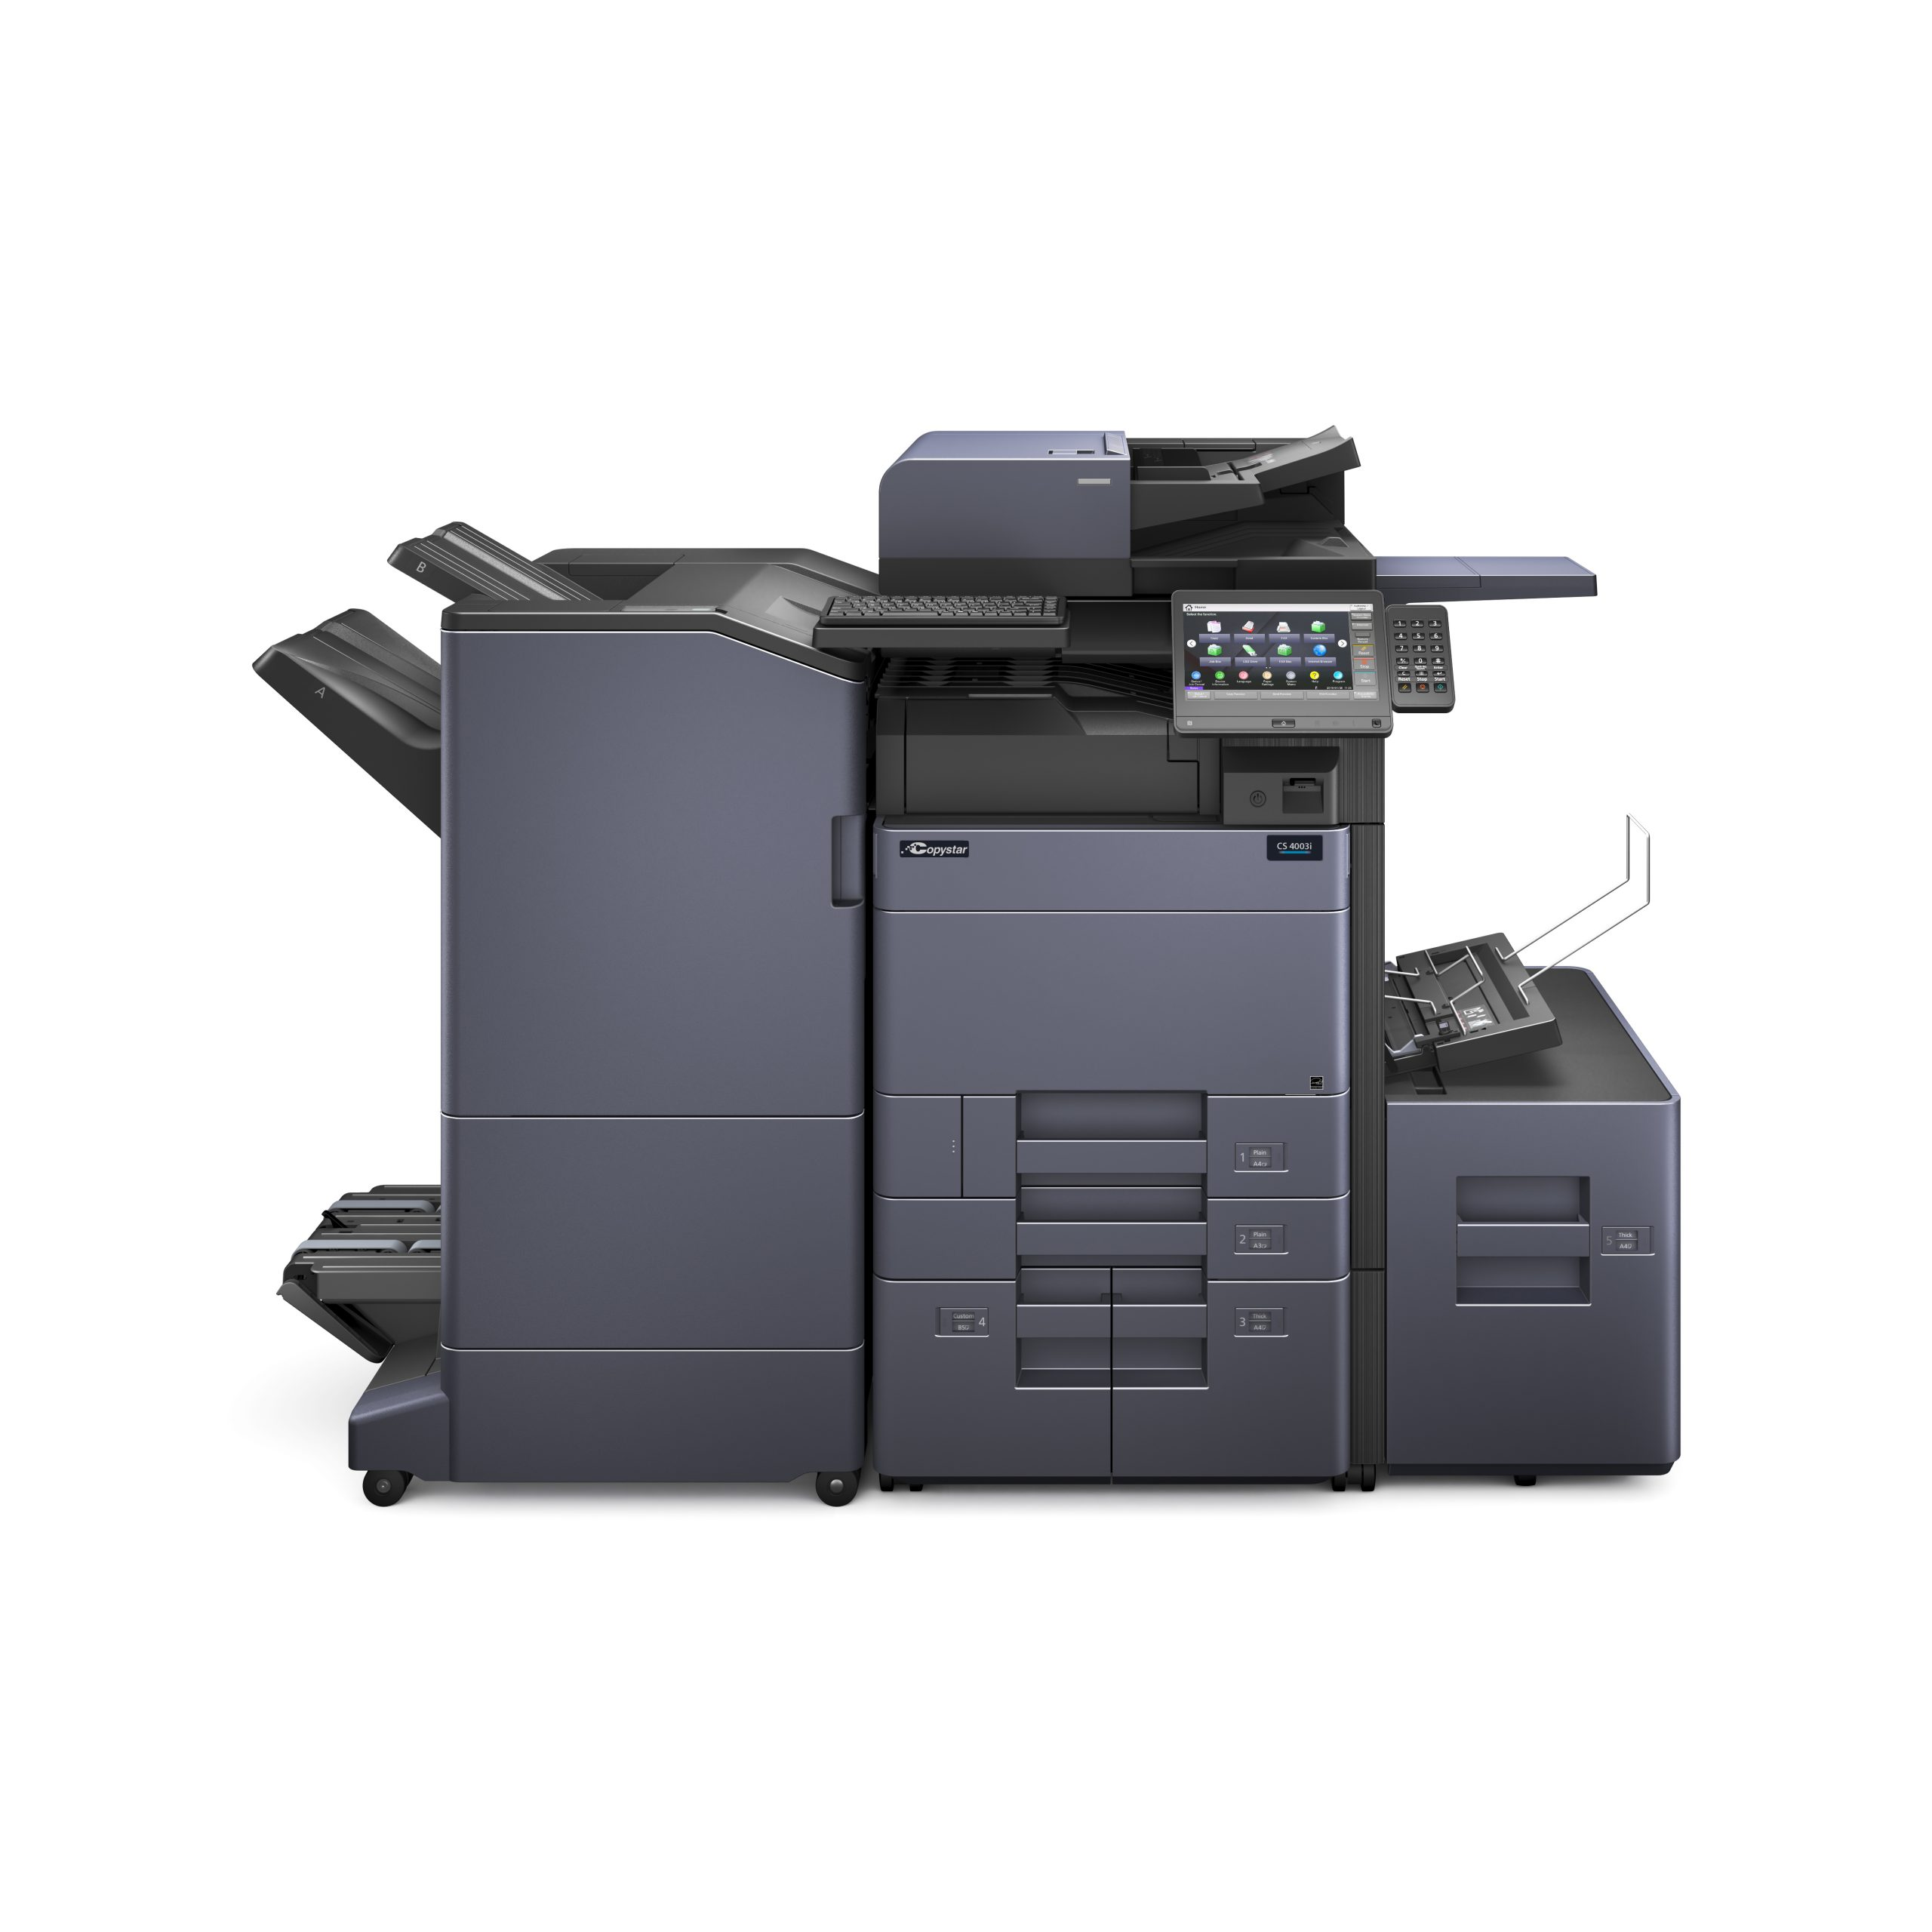 kyocera CS_4003i Lease Printer Copier Scanner Minnesota